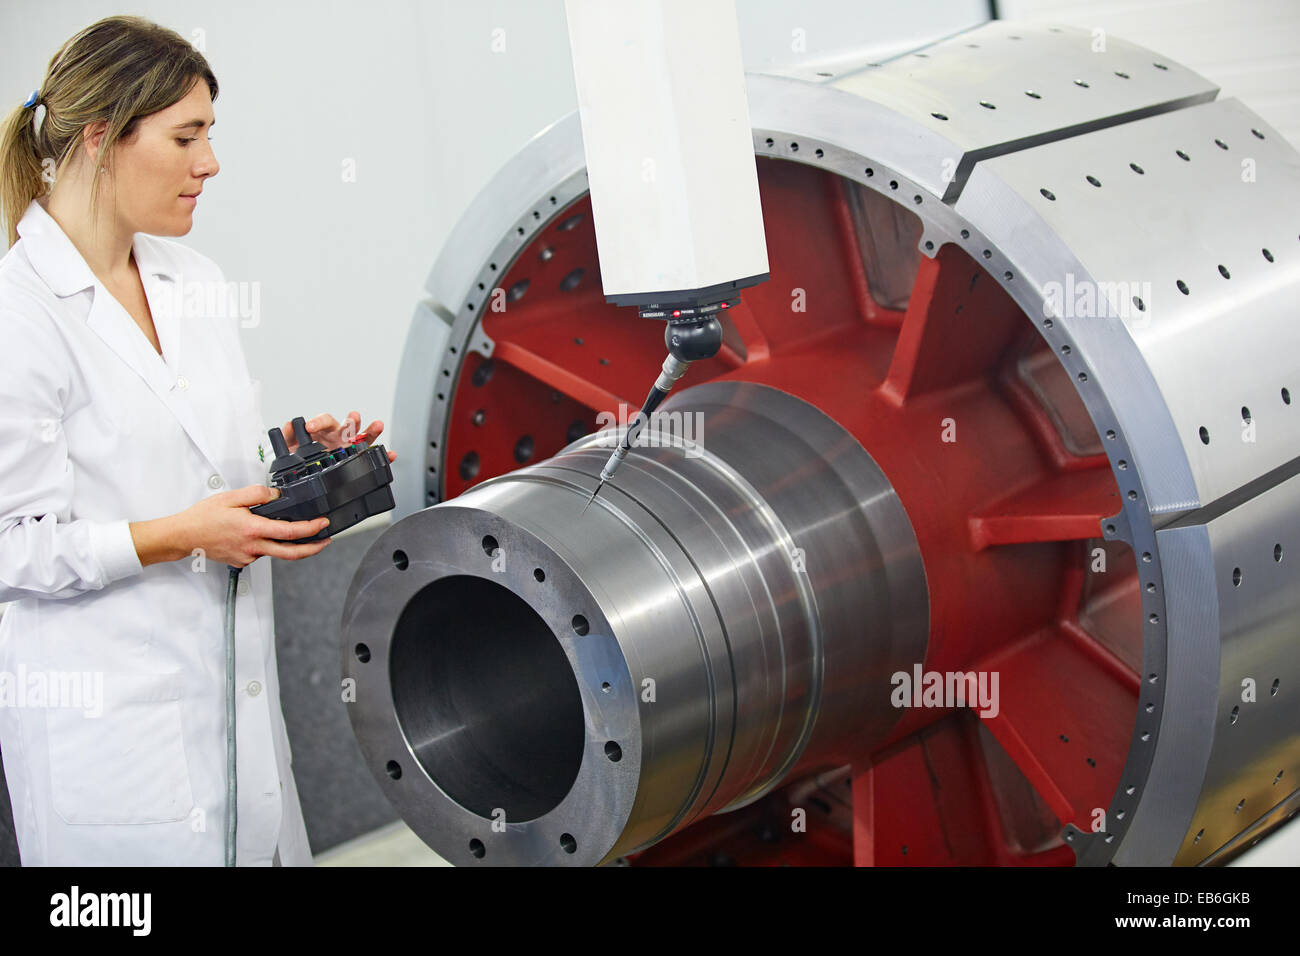 Technical measuring wind component in three-dimensional machine. CMM. Coordinate Measuring Machine. Innovative Metrology - Stock Image